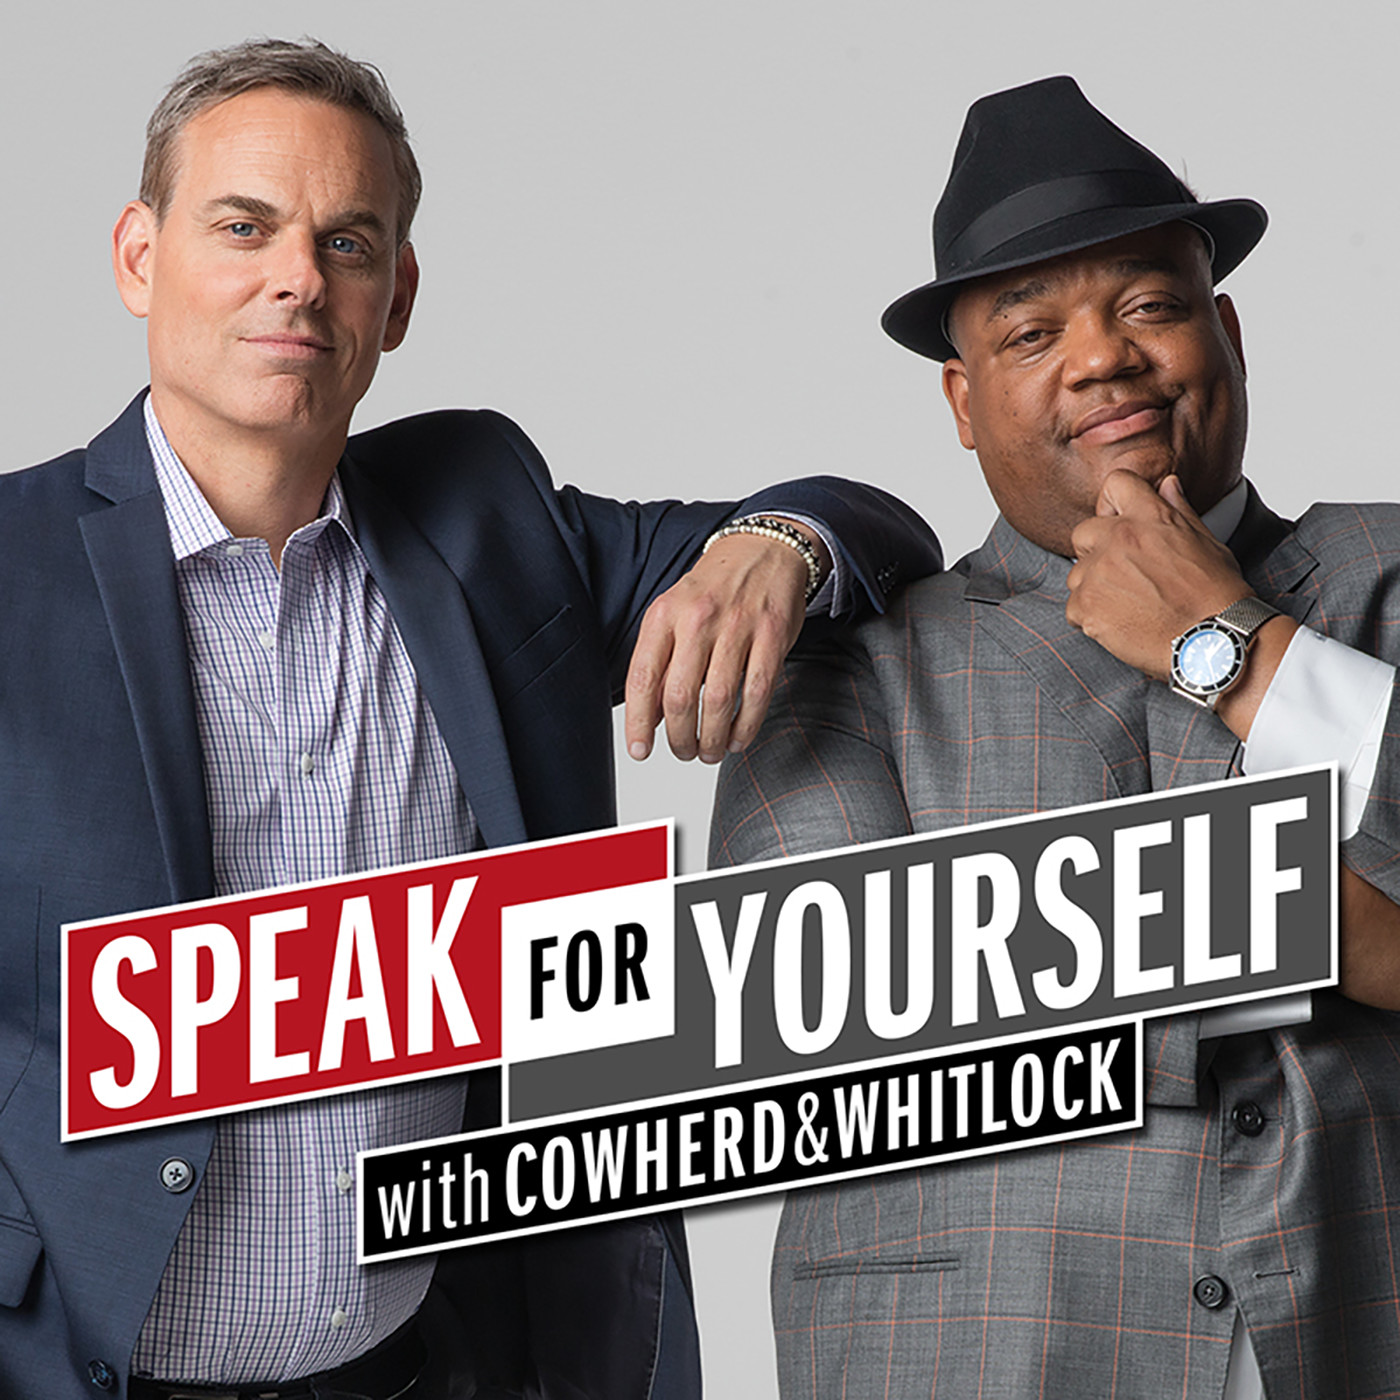 Rockets Vs Warriors Channel: Speak For Yourself With Cowherd & Whitlock